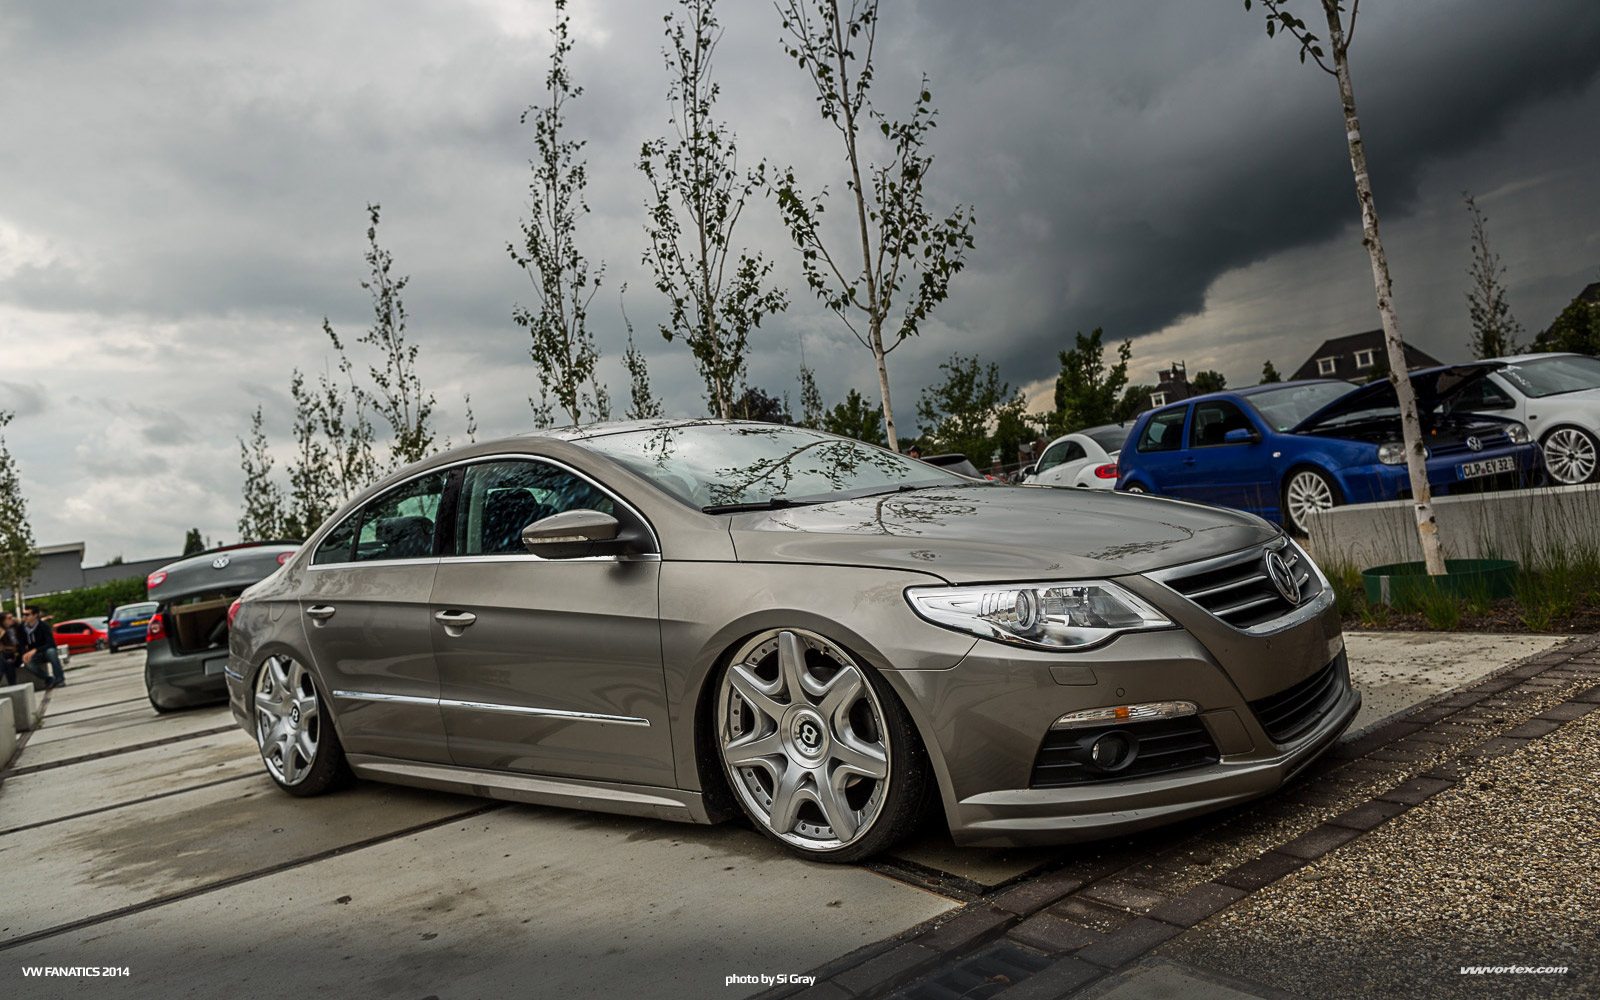 VWFanatics-2014-Si-Gray-482